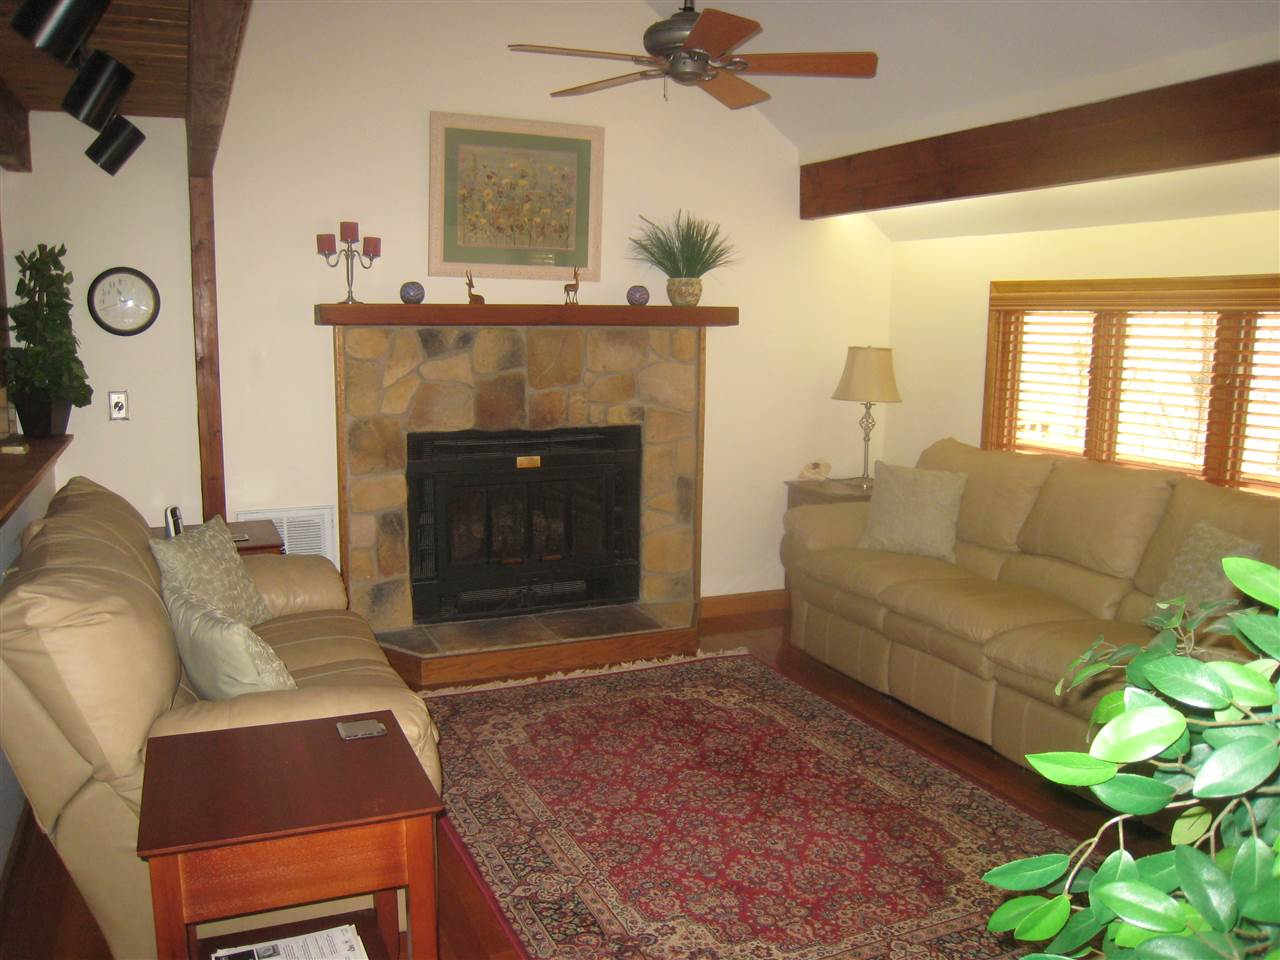 Post & Beam,Craftsman, Detached - WINTERGREEN RESORT, VA (photo 3)